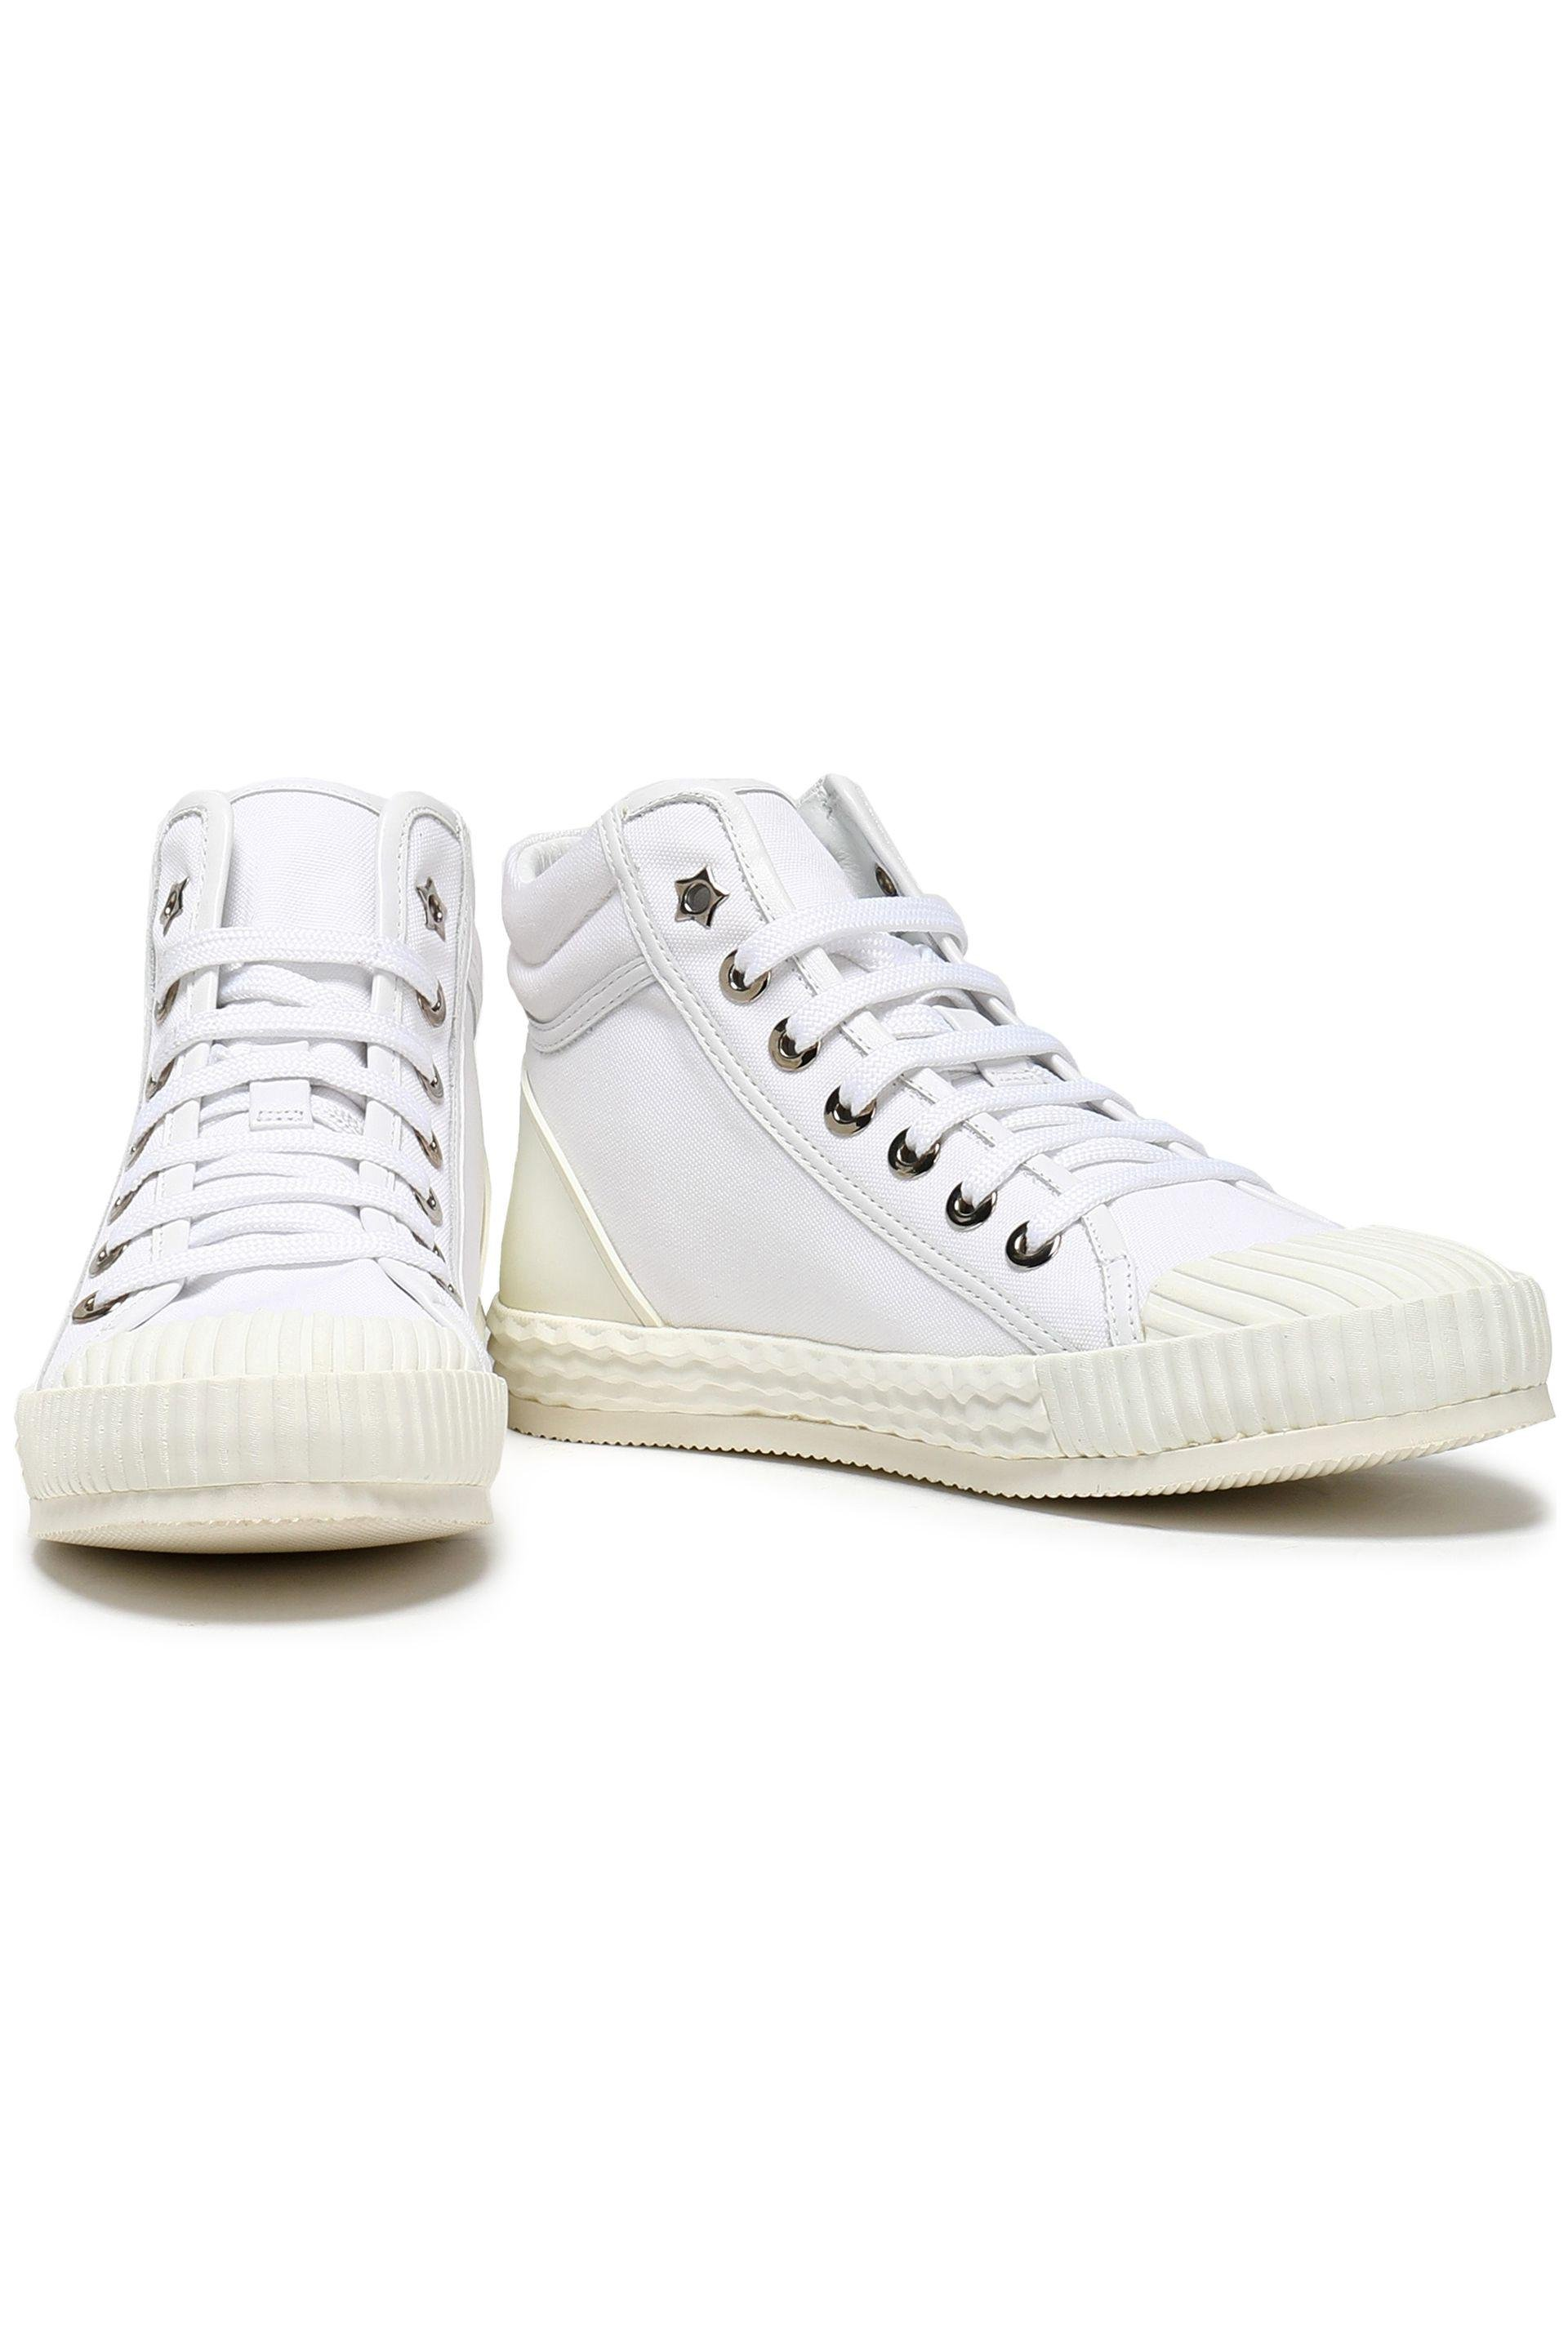 Clearance Geniue Stockist Jimmy Choo Woman Berlin Canvas And Embossed Leather High-top Sneakers White Size 41 Jimmy Choo London Free Shipping Order Outlet Excellent Clearance Shop For For Sale Free Shipping S3oRRN6xWT